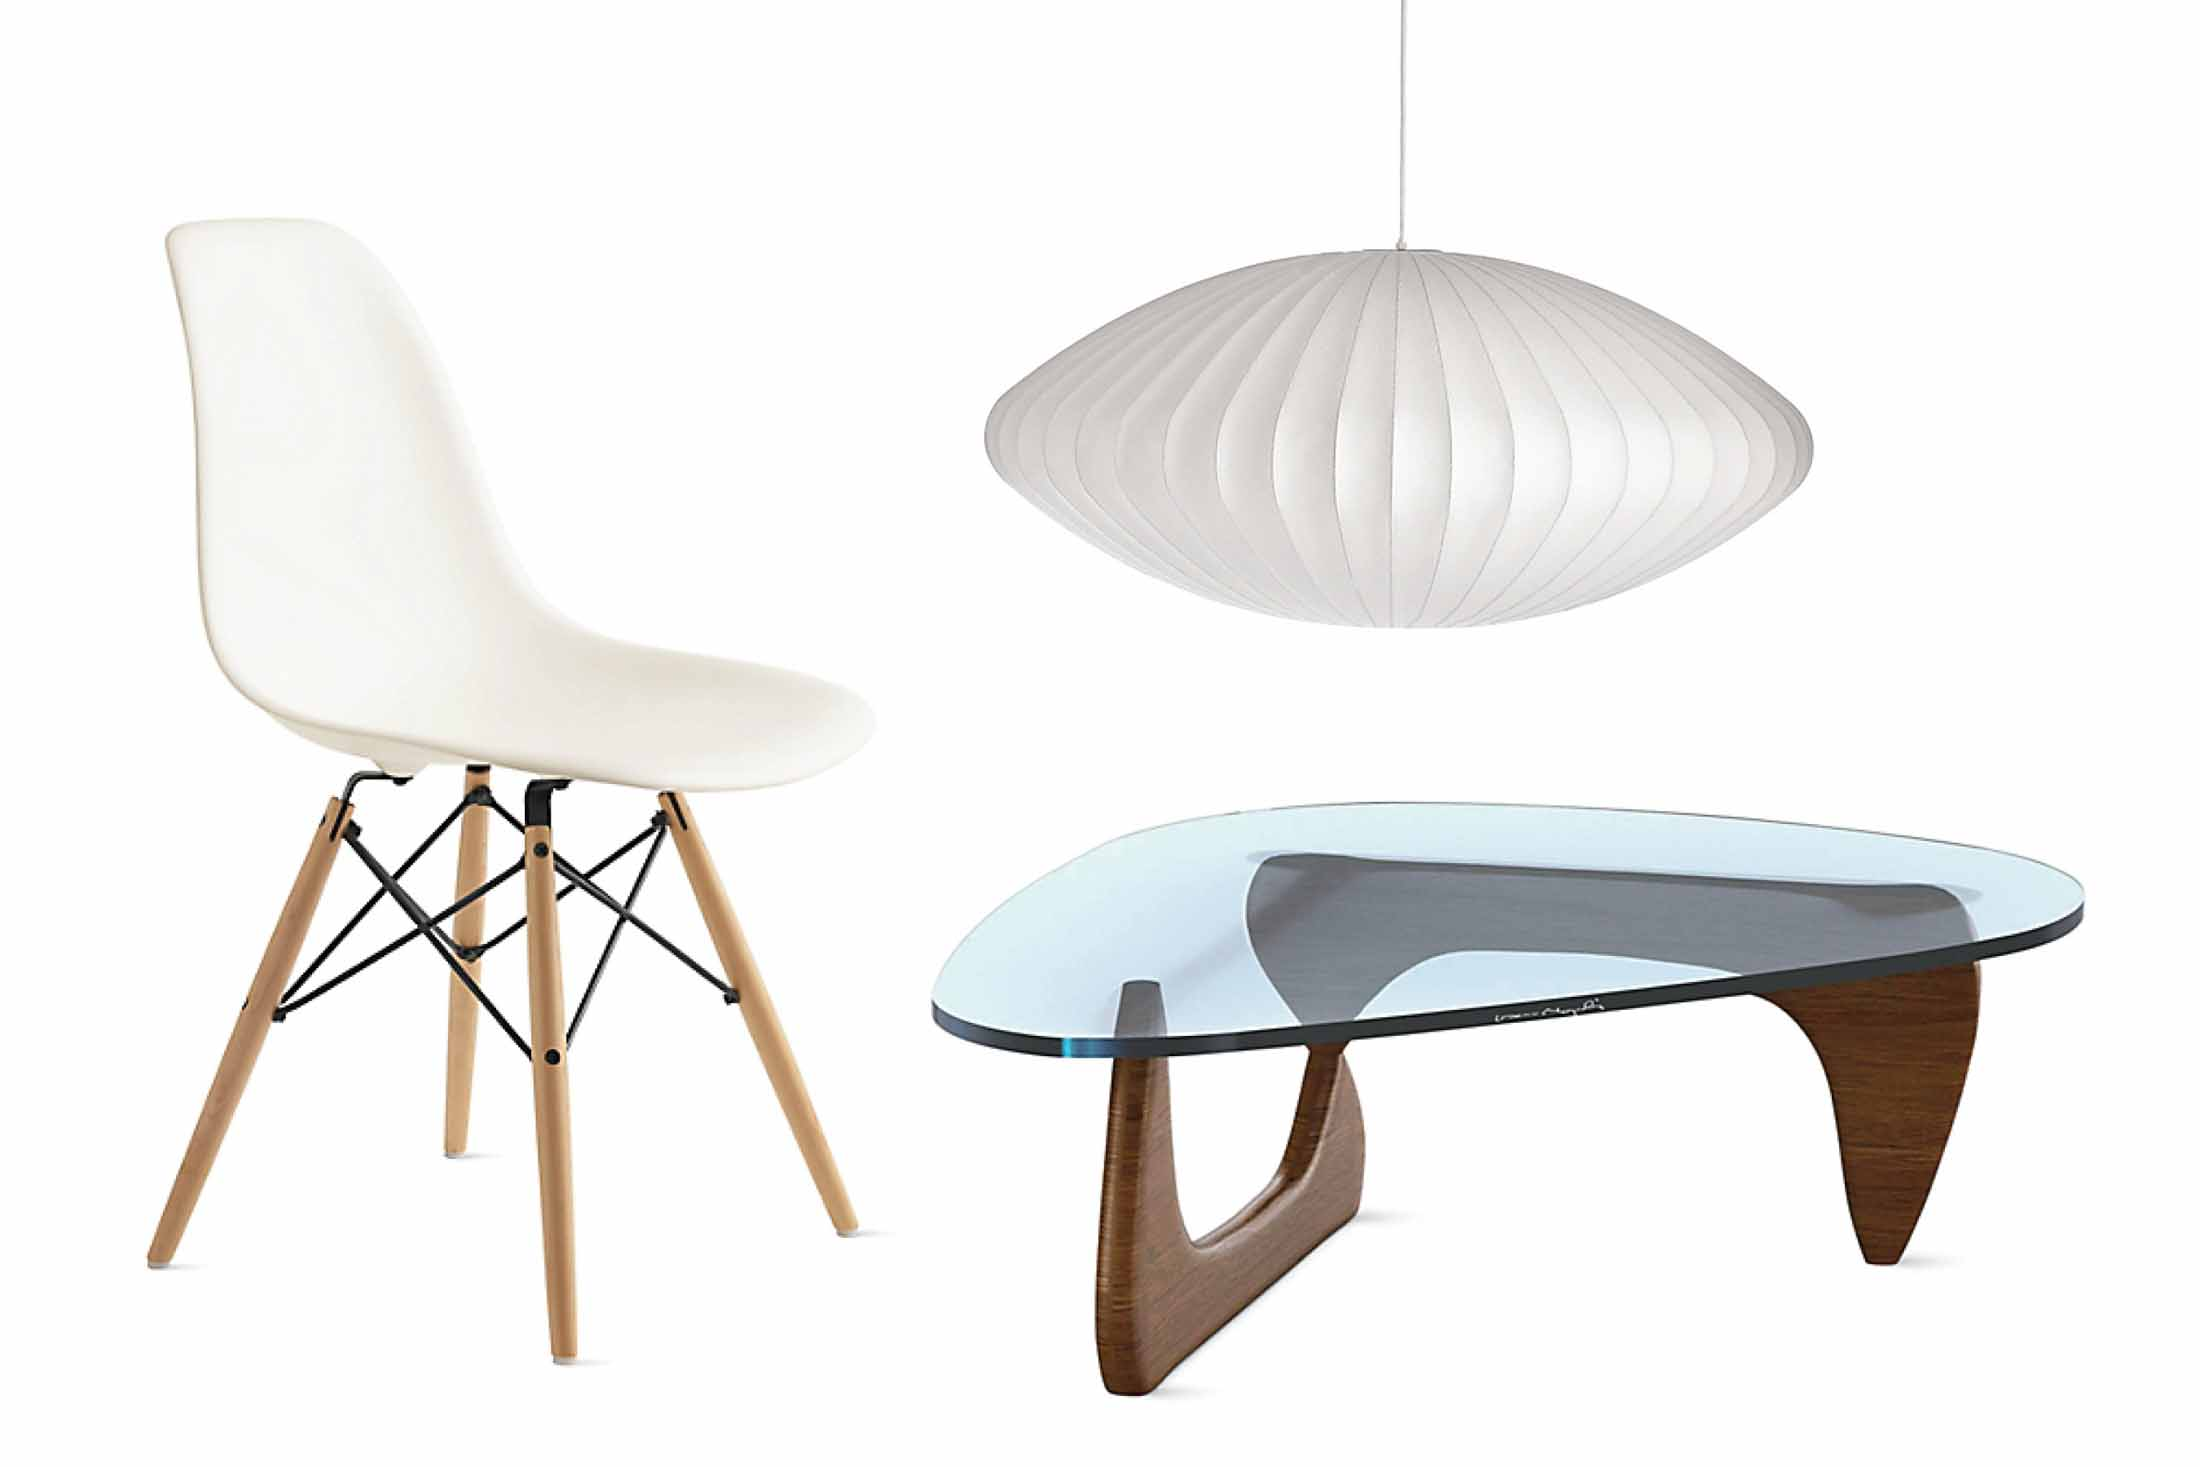 Dwrs herman miller sale 10 iconic investment worthy pieces